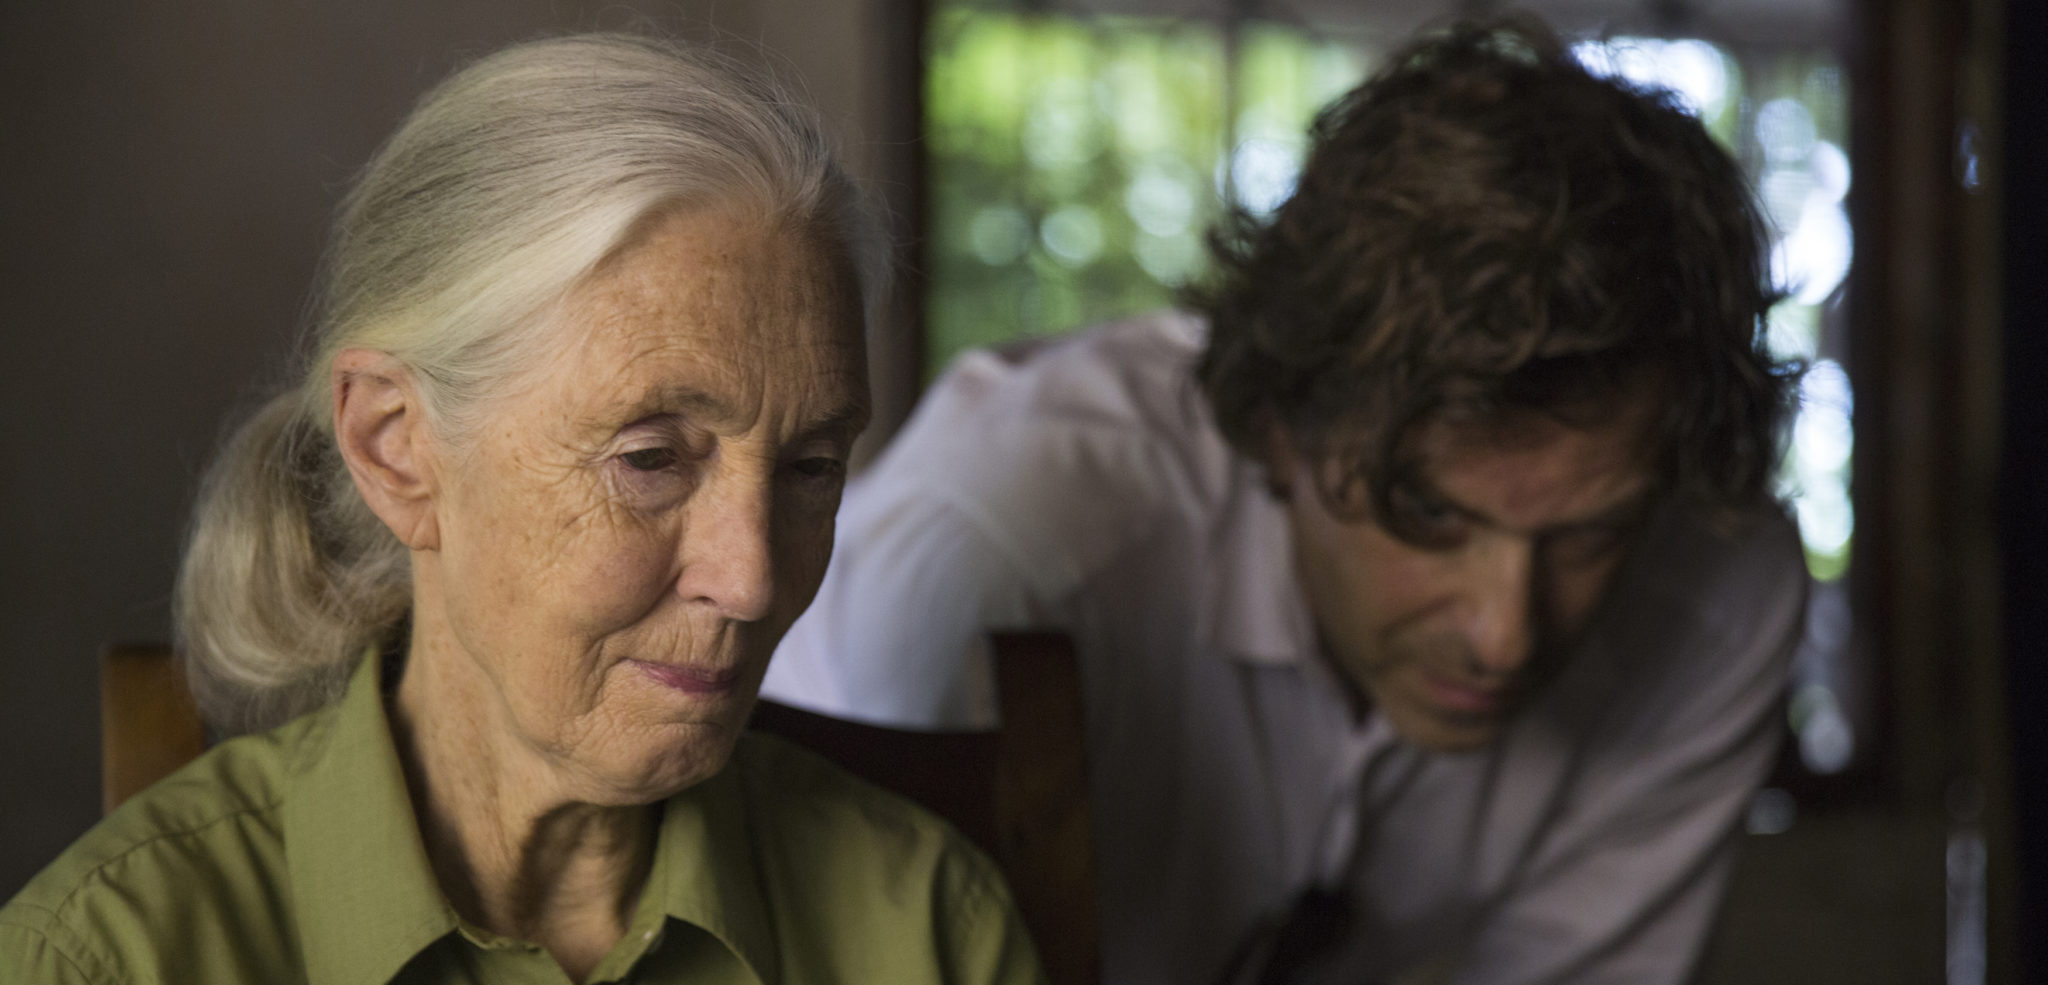 Jane Goodall with director Brett Morgan